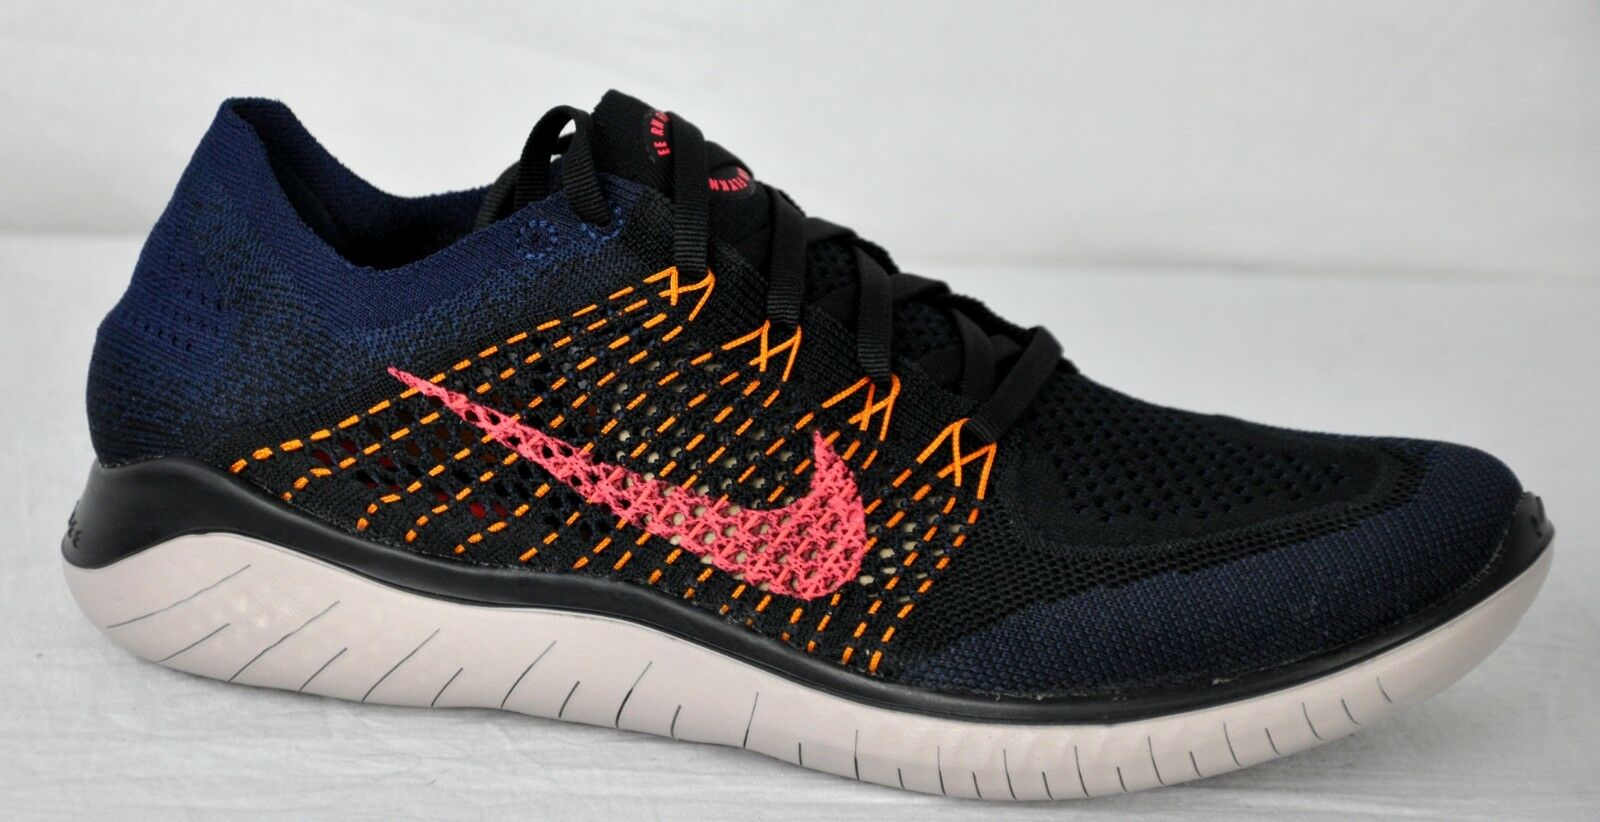 Nike Mens Free RN Flyknit 2018 shoes 942838 068 Black Flash Crimson Size 12